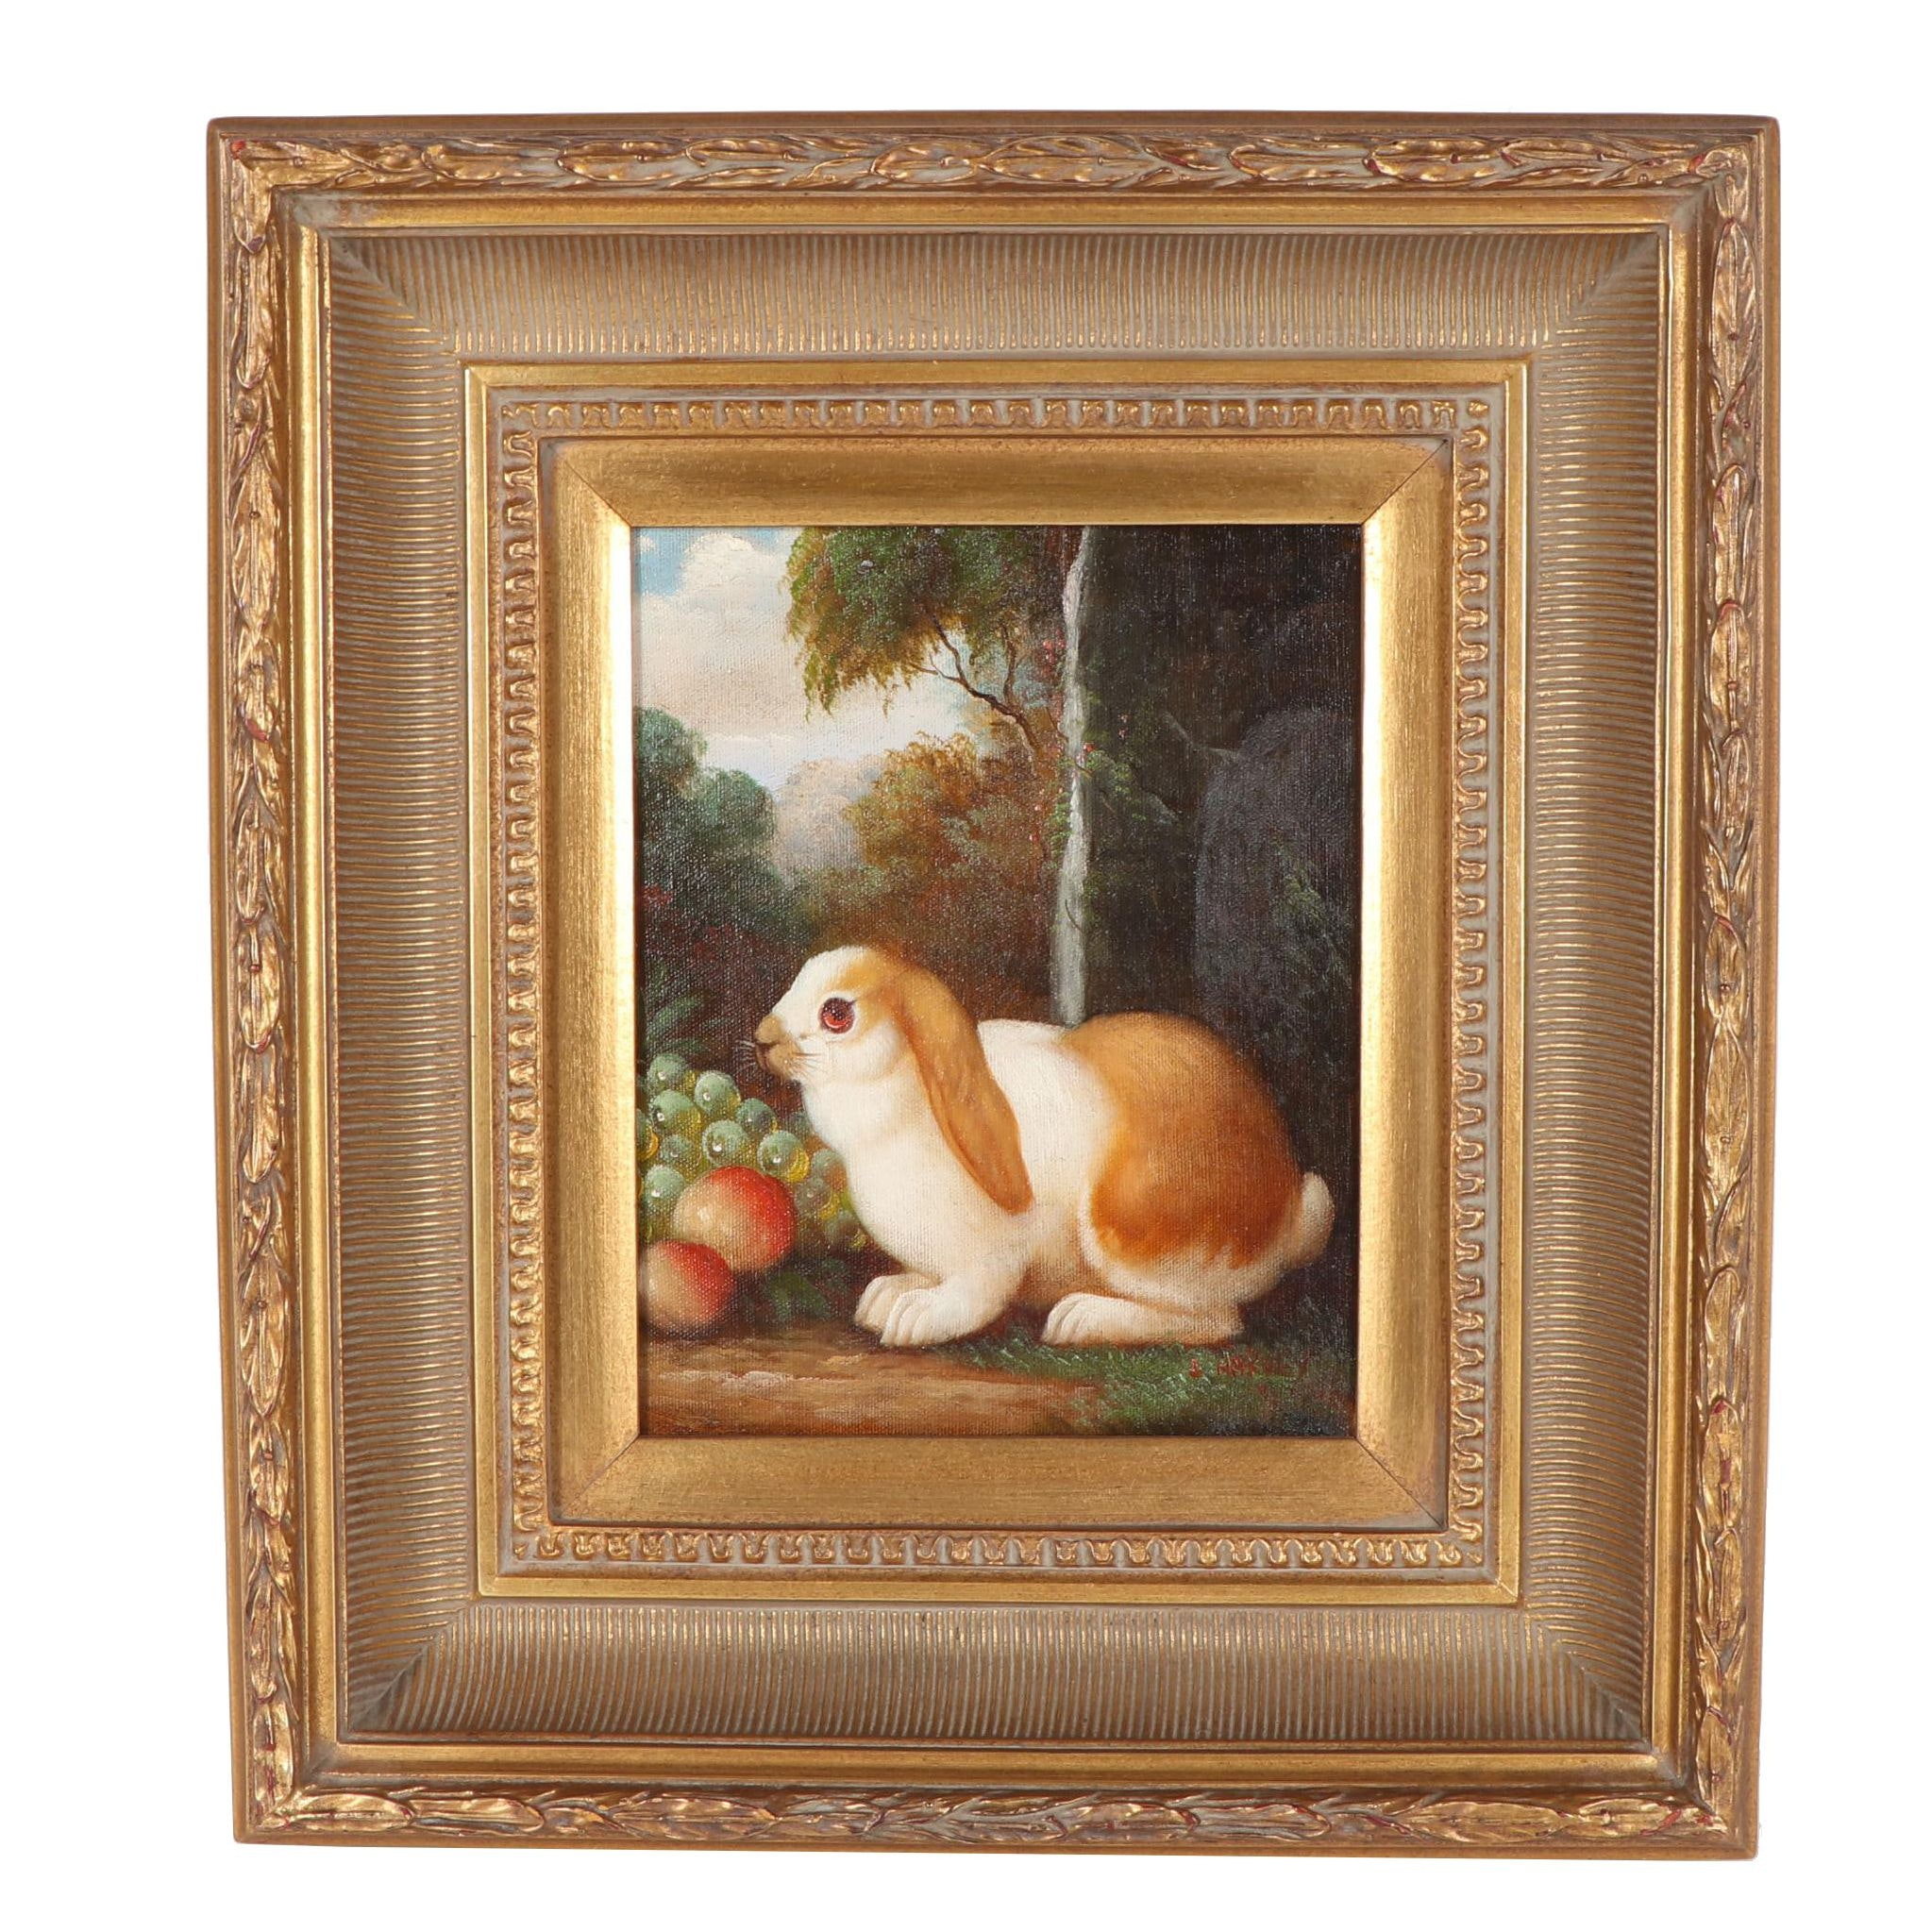 Harvey Oil Painting of a Rabbit